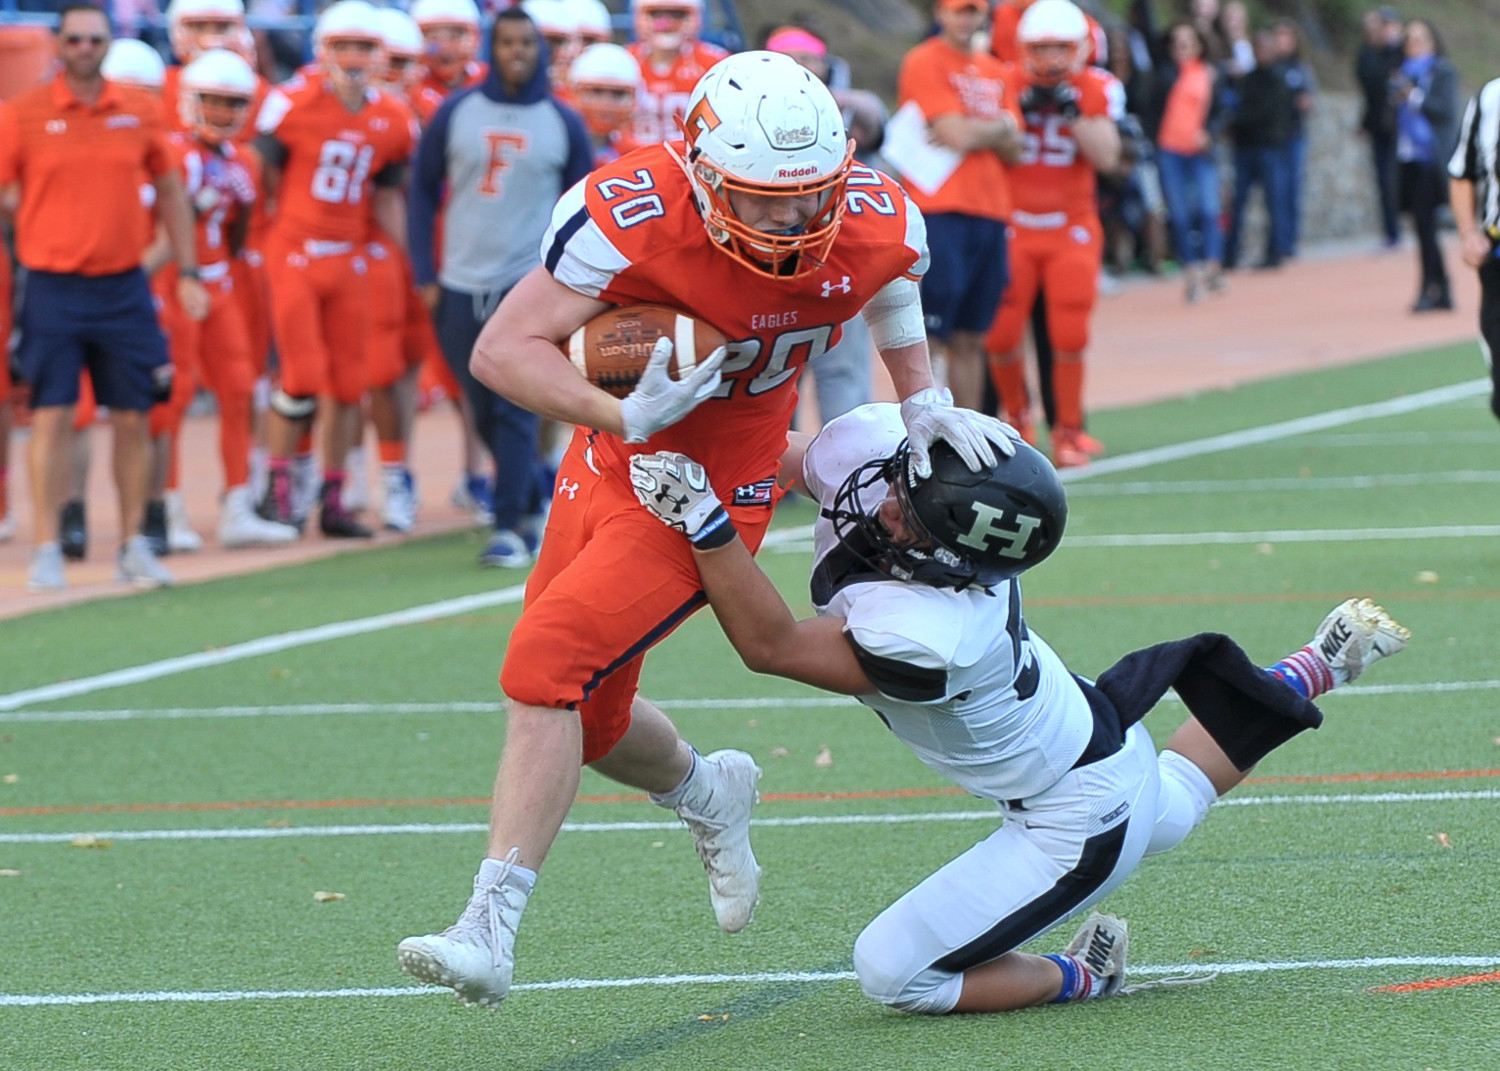 Fieldston's Josh Godosky bulls his way to a big gain in last Saturday's division championship game versus Hackley.